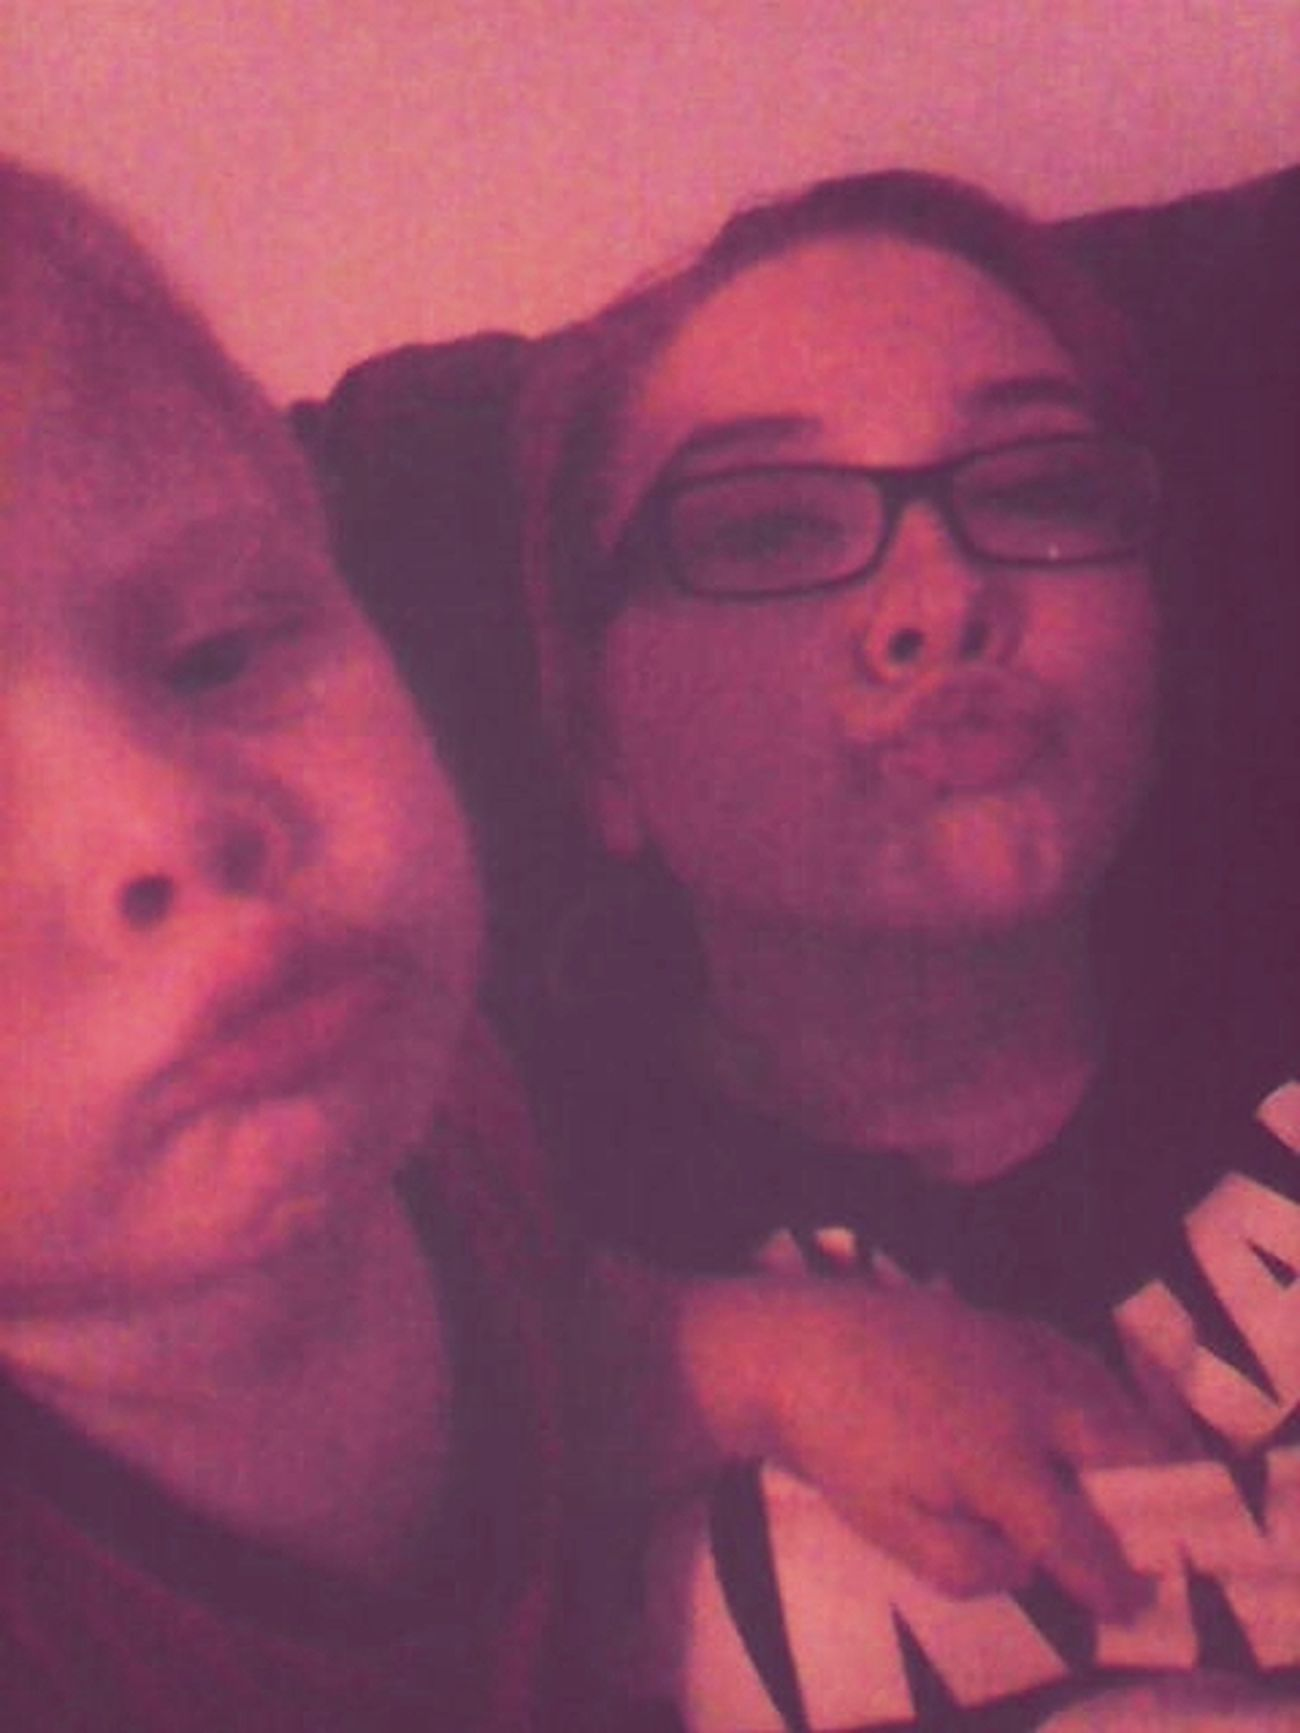 Duck Face My Nephew ♥ Little Thug.